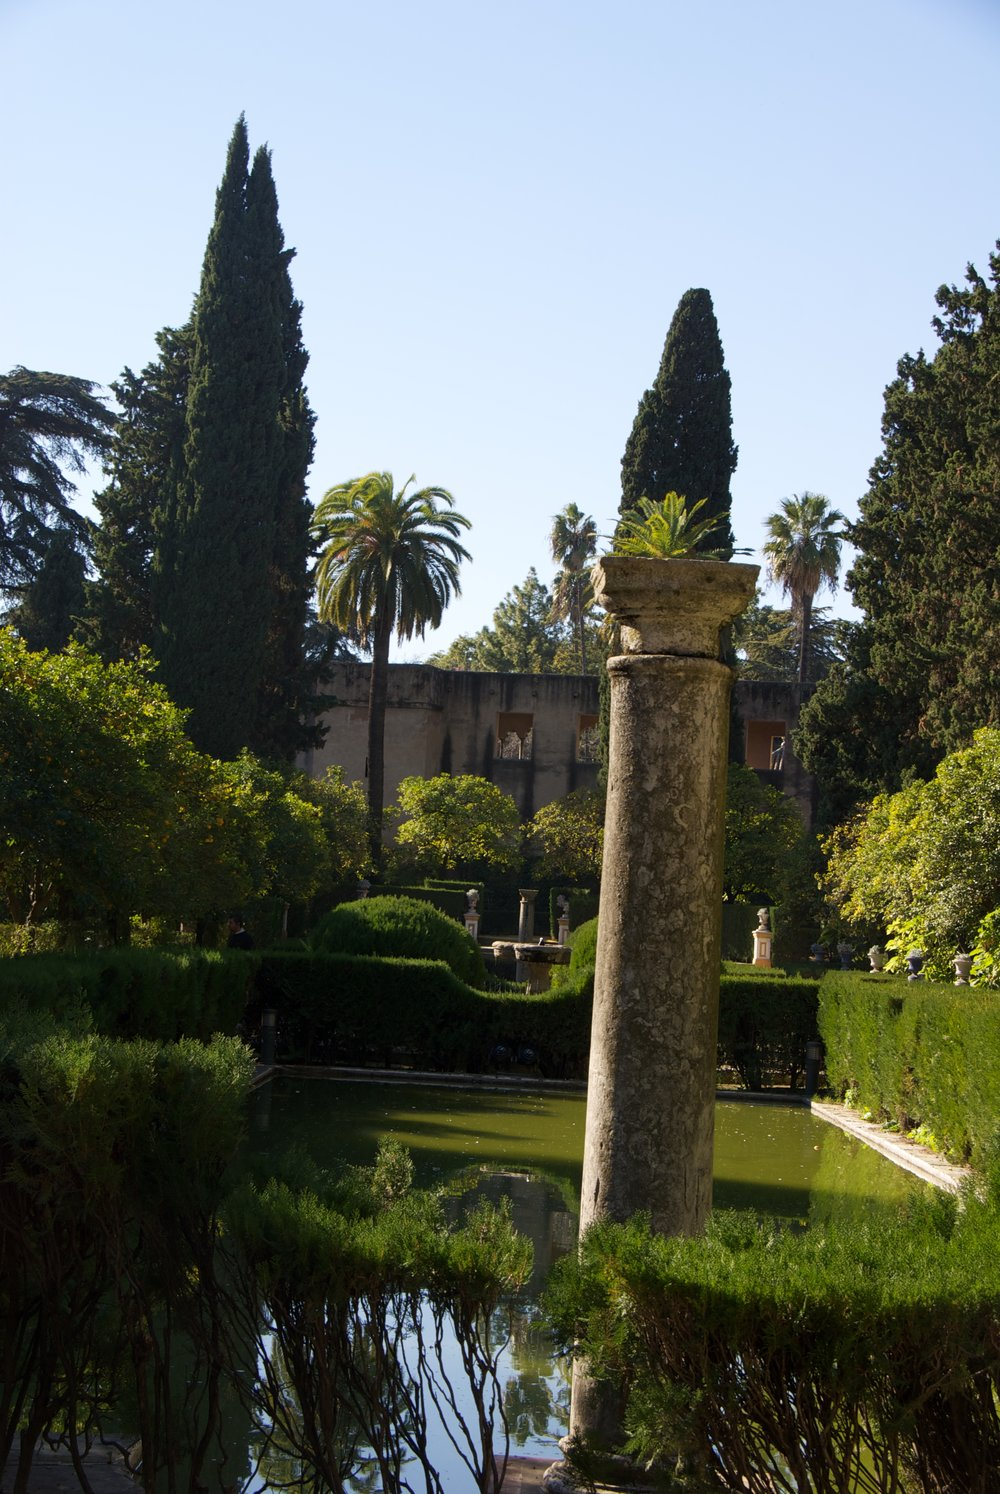 The Gardens of the Real Alcázar